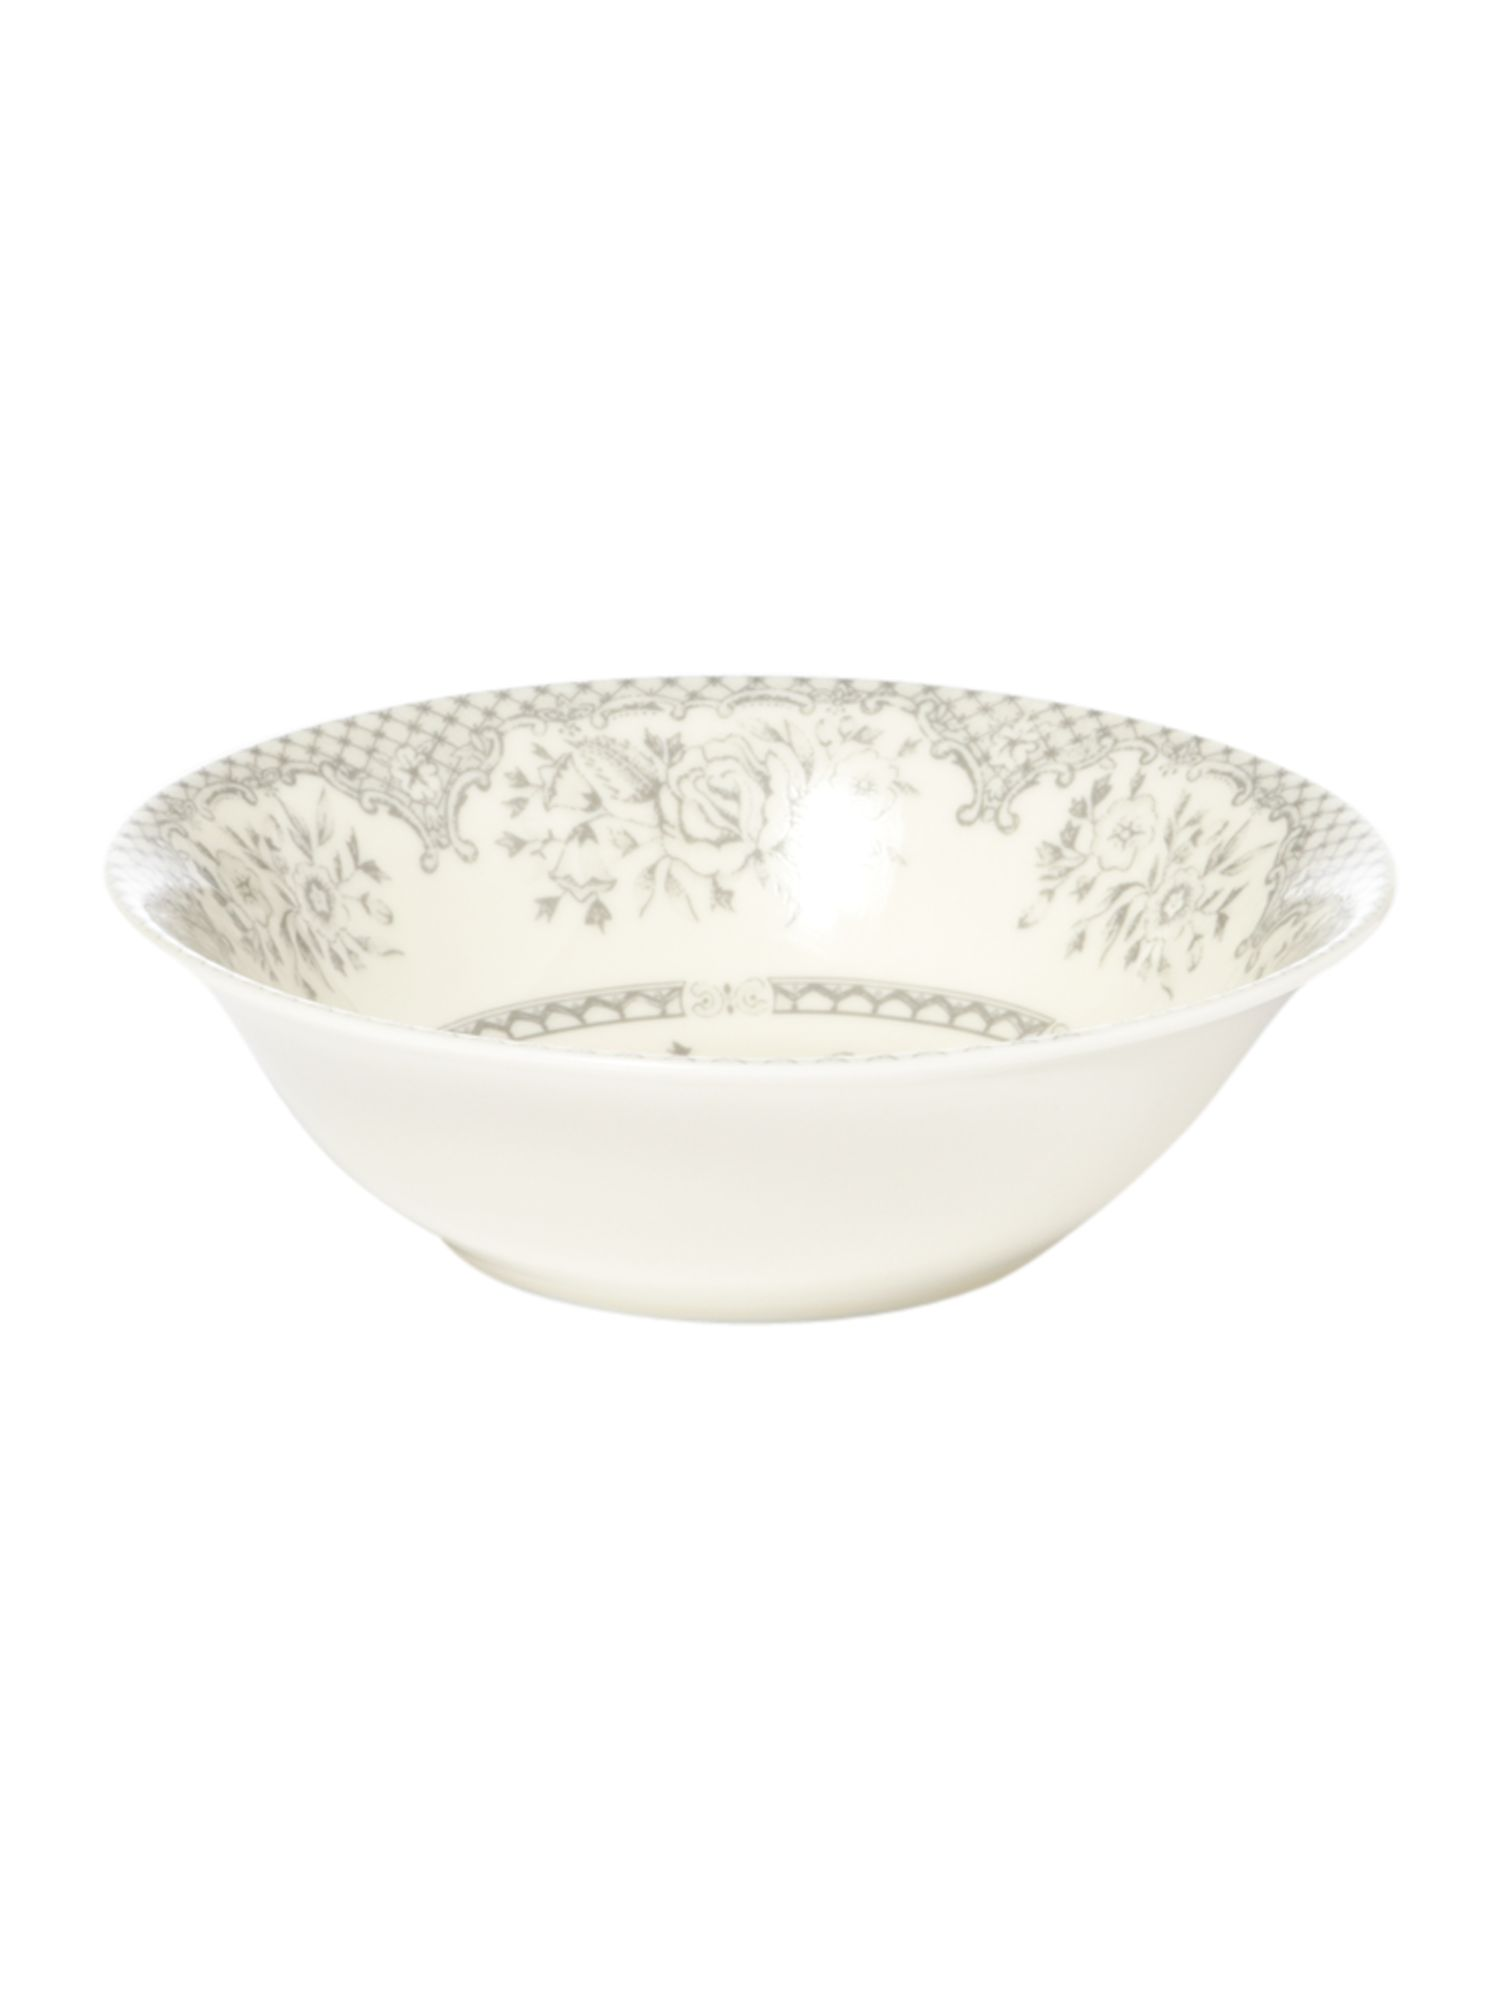 Kew cereal bowl